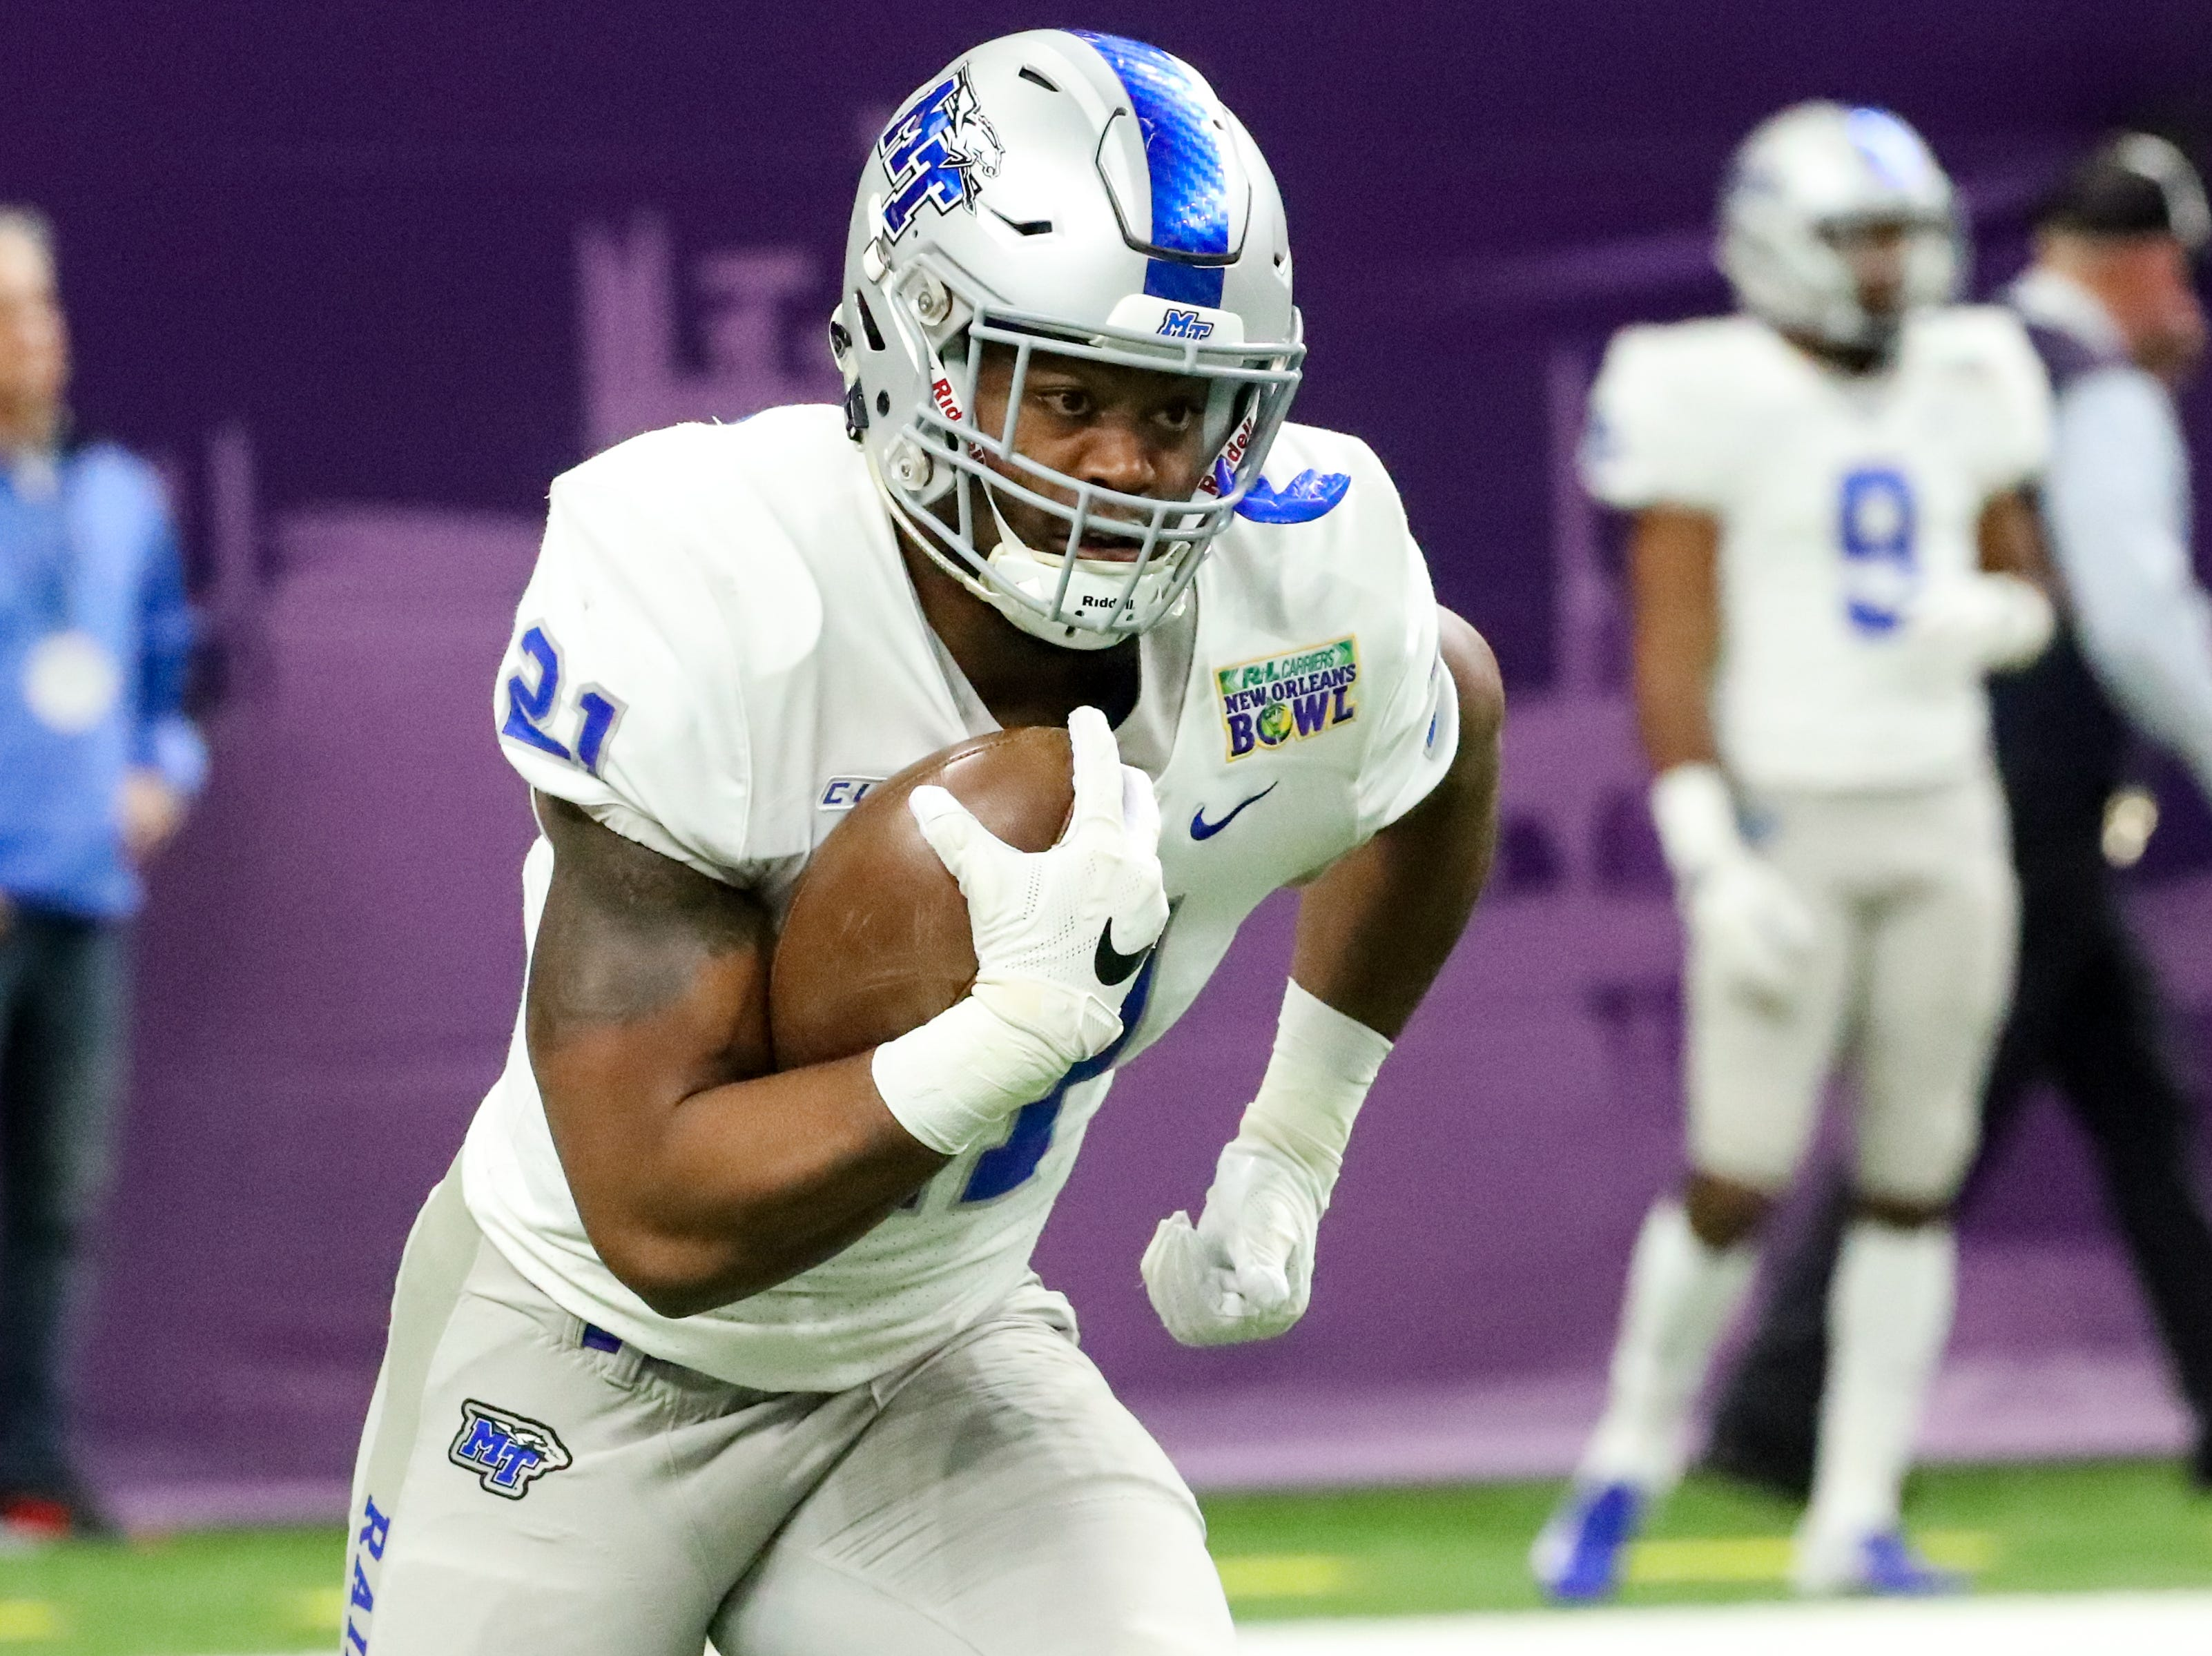 Middle Tennessee Blue Raiders running back Tavares Thomas (21) runs drills before the game at the Mercedes-Benz Superdome Saturday, Dec. 15, 2018, in New Orleans, La.